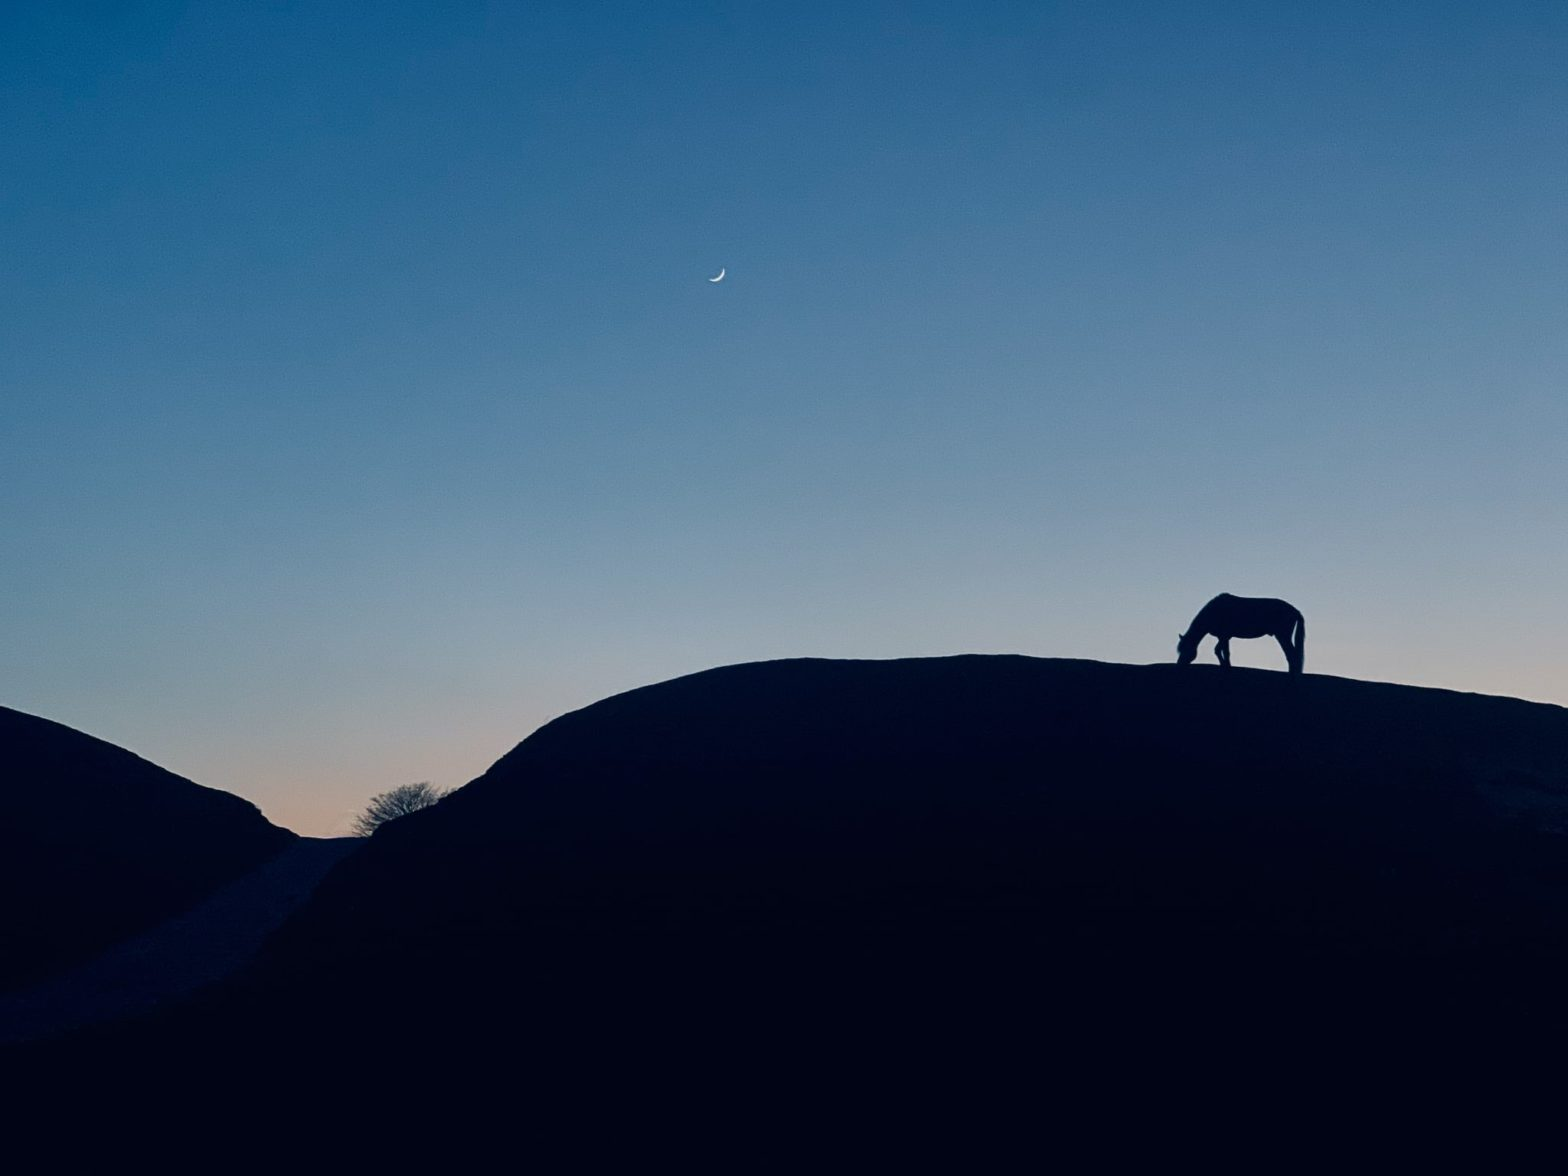 Silhouette of a horse on the hill late in the evening with moon crescent in the sky